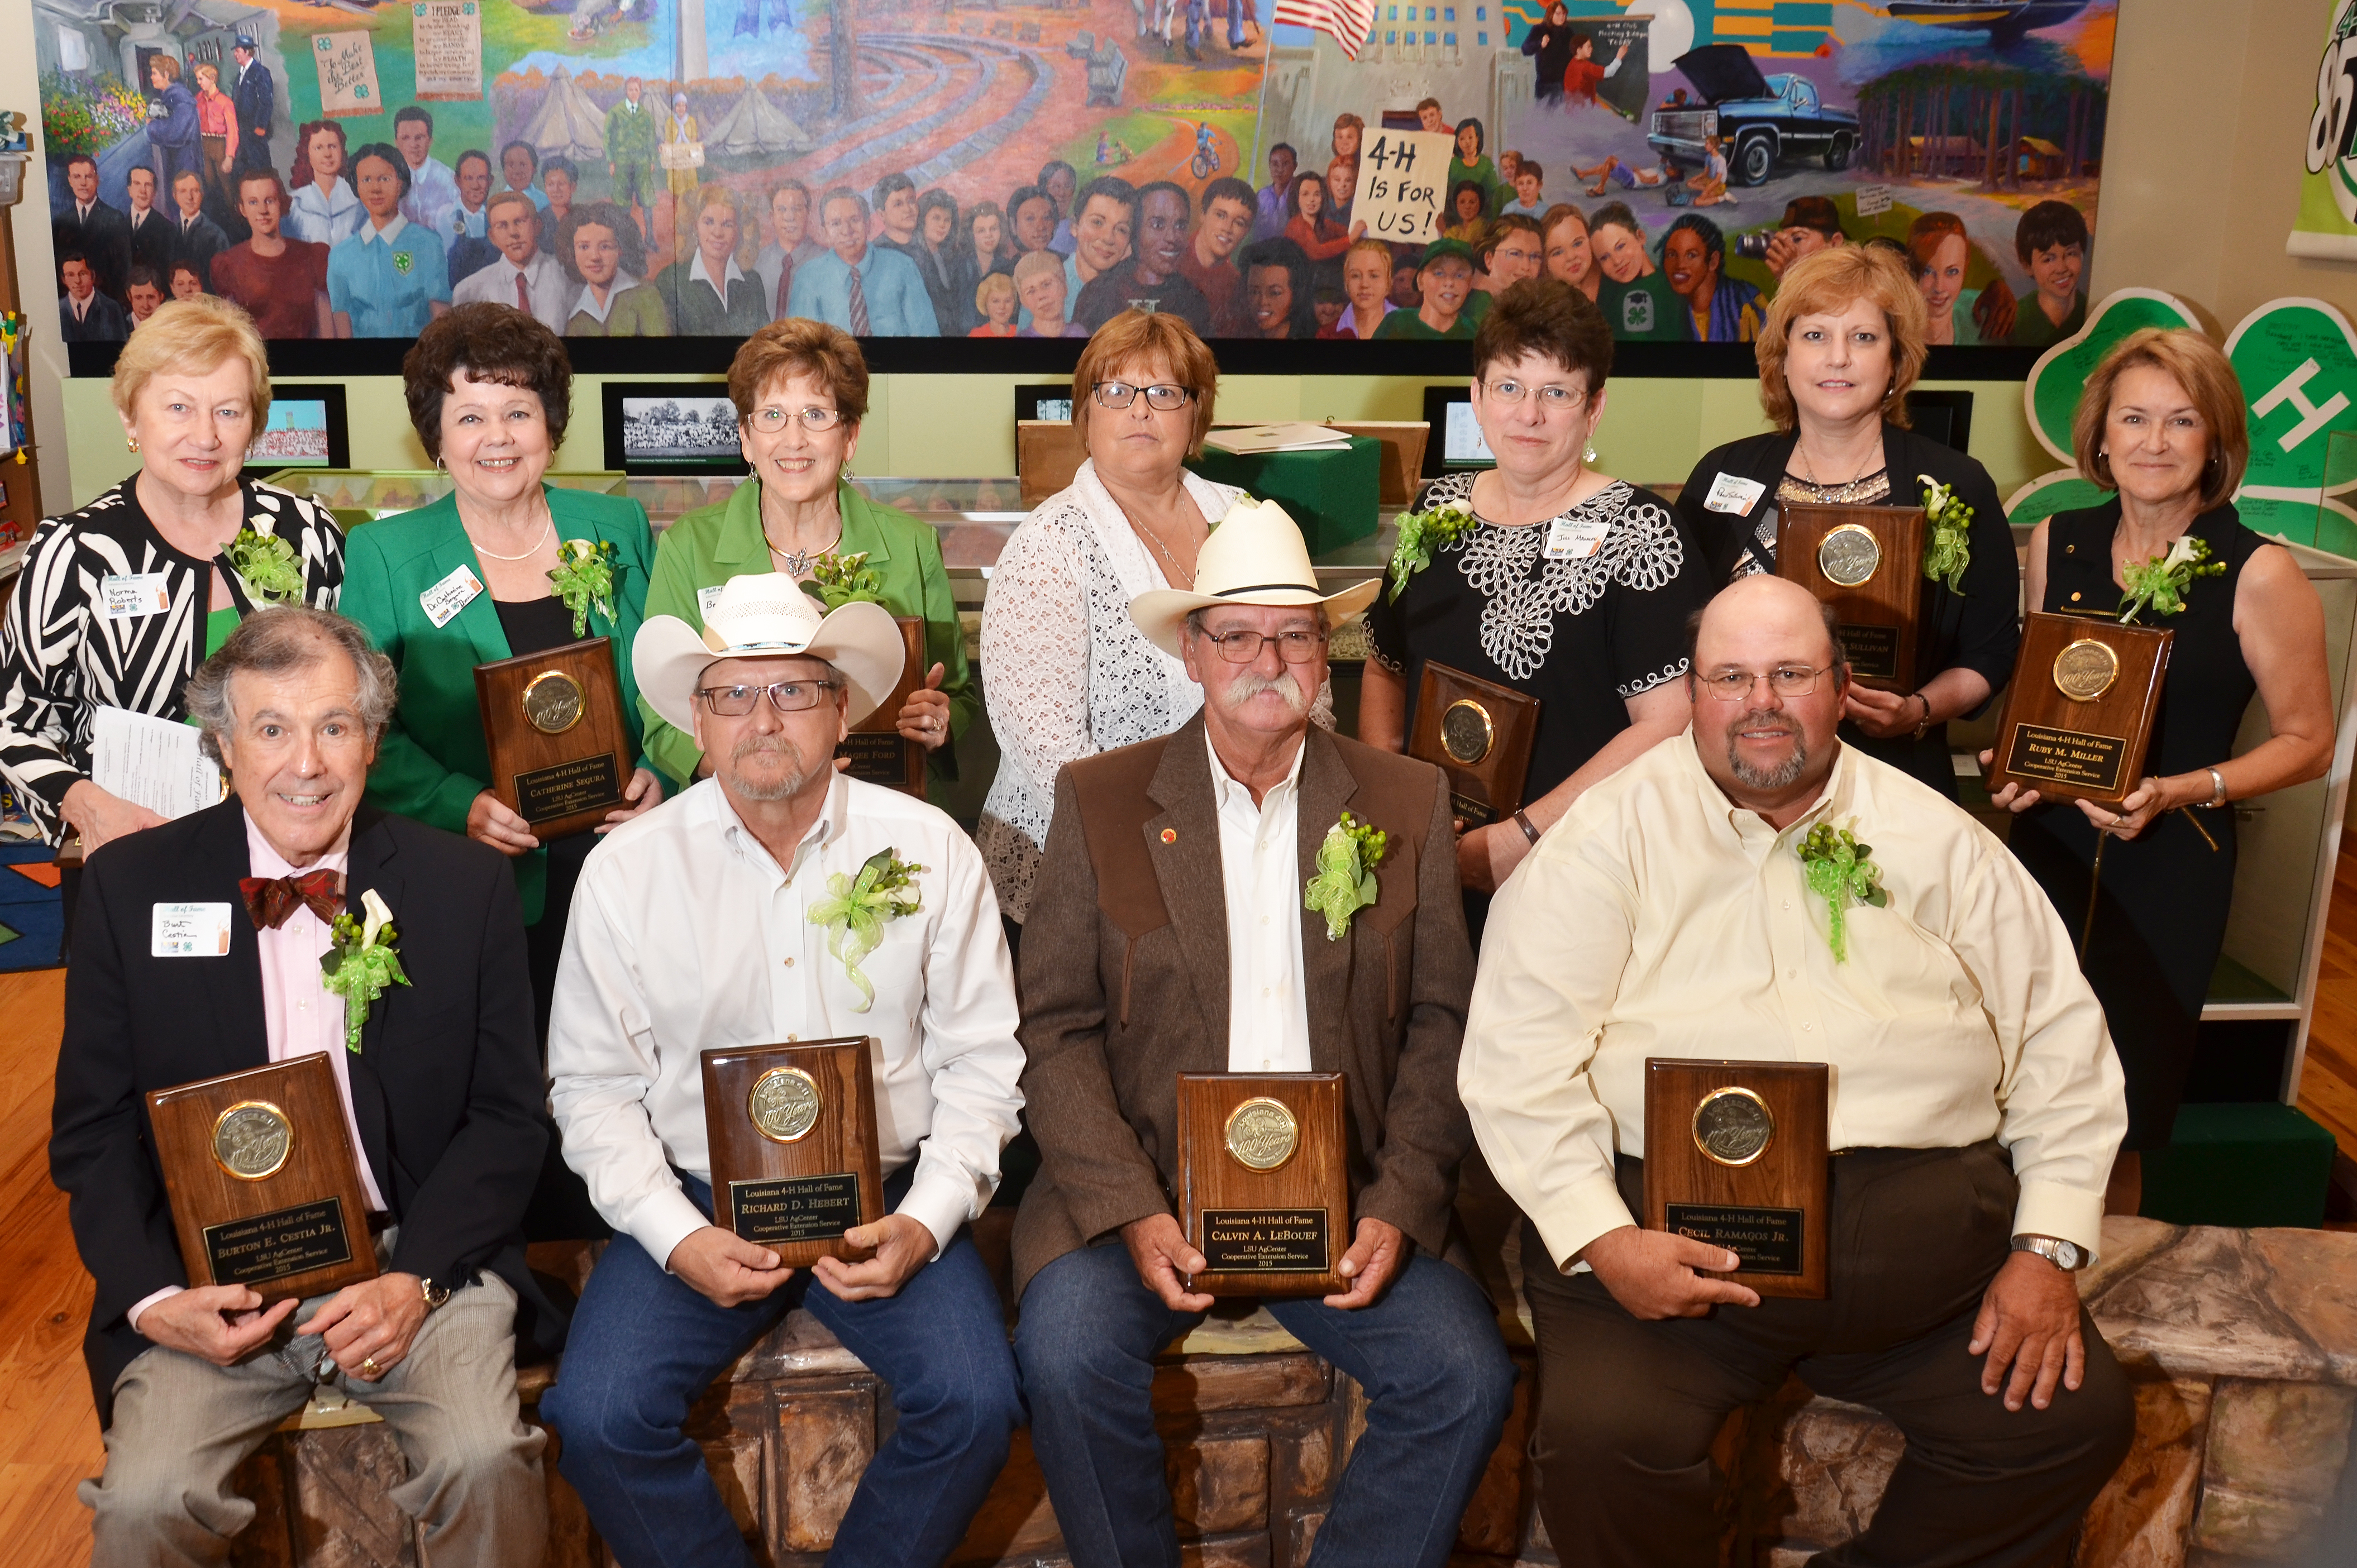 12 inducted into Louisiana 4-H Hall of Fame